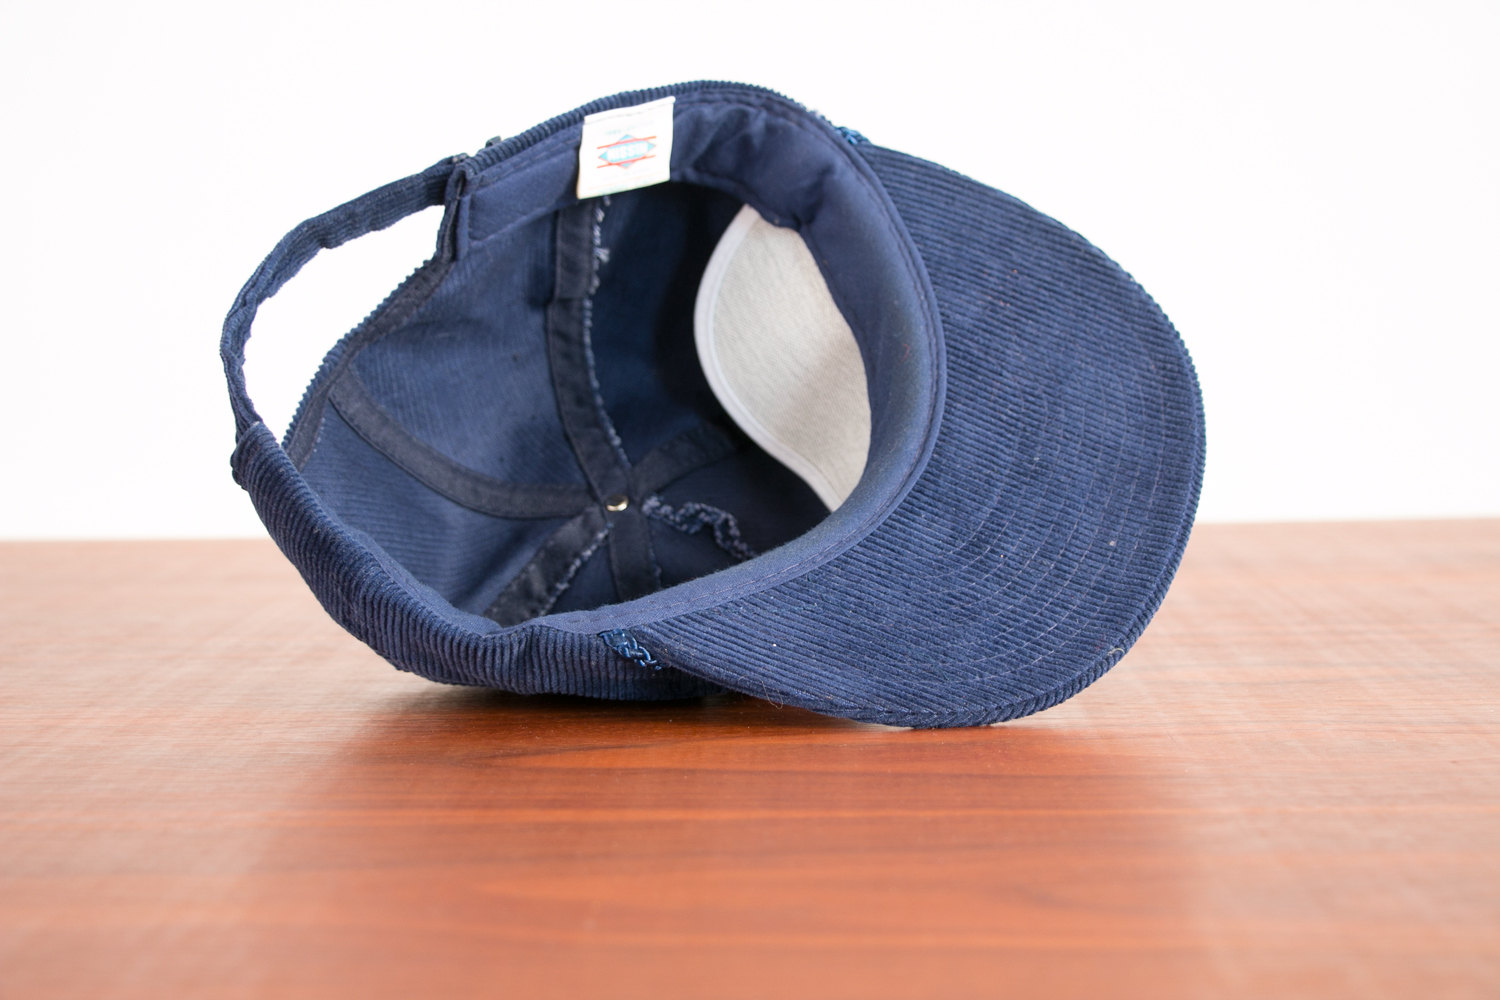 Vintage 1970's Trucker Cap / Hat w Buck's Sub Shop Patch, Blue Corduroy, Adjustable - Hipster, Indie, Country Western, Retro